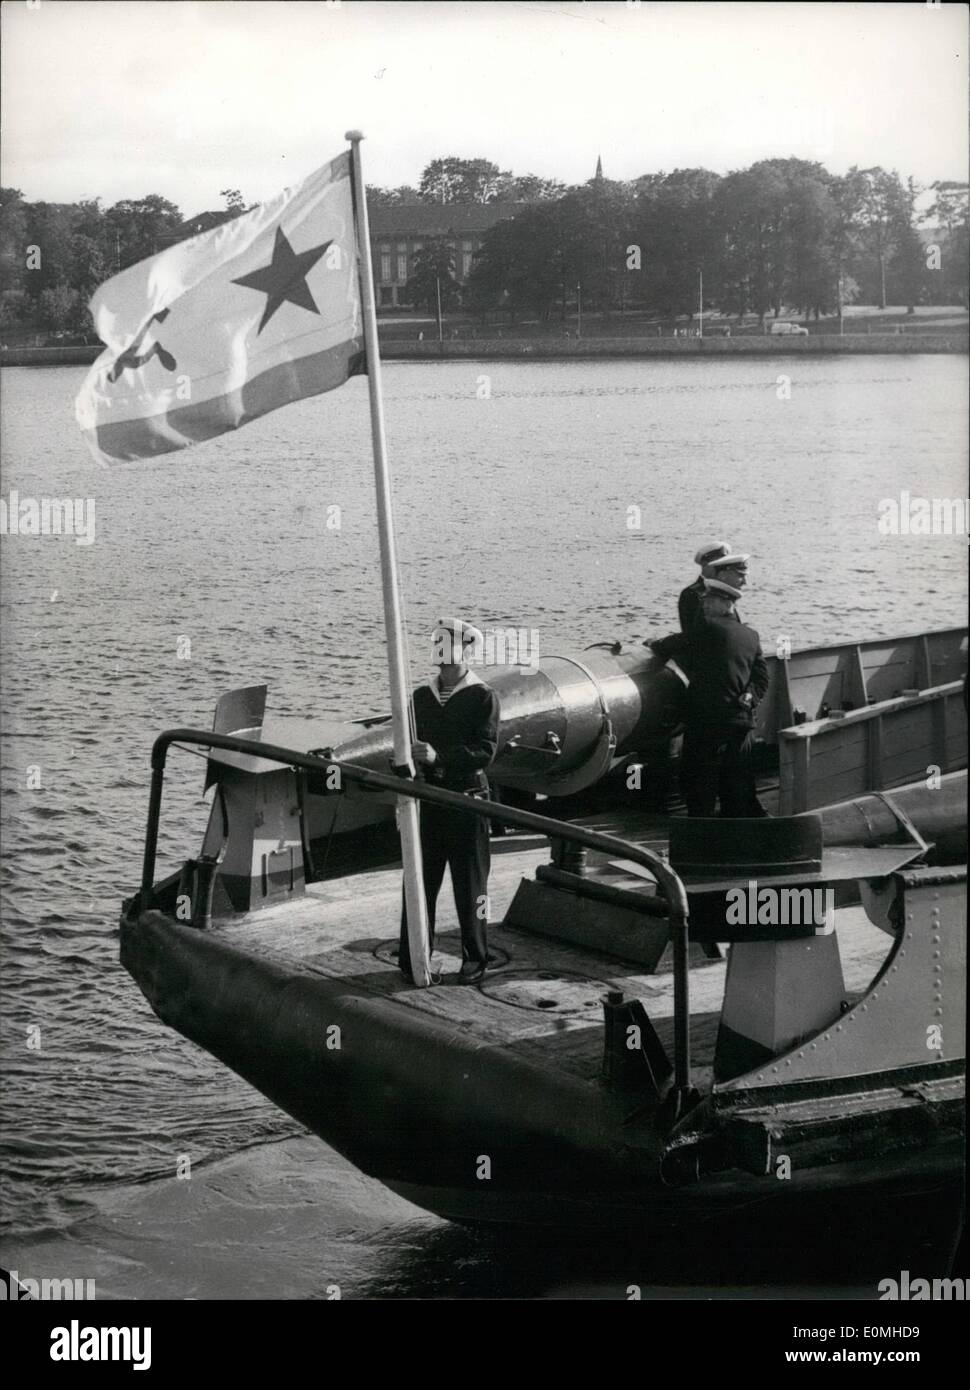 Jul. 07, 1955 - Lent-ships return from Russia to USA 14 ships, which had been lent to the Soviets by USA during World War II, were returned by the Soviets at Kiel/Germany. Our picture shows the hauling in of the Soviet-flag. - Stock Image